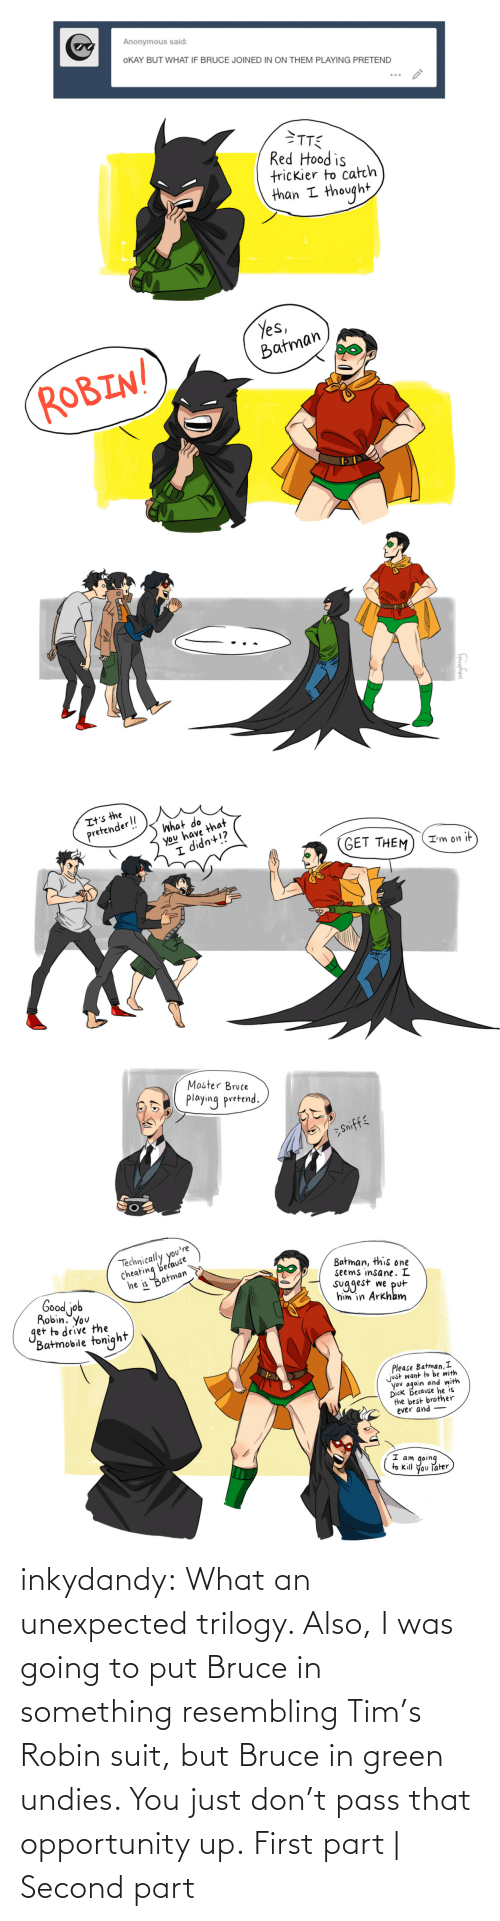 robin: inkydandy: What an unexpected trilogy. Also, I was going to put Bruce in something resembling Tim's Robin suit, but Bruce in green undies. You just don't pass that opportunity up. First part | Second part